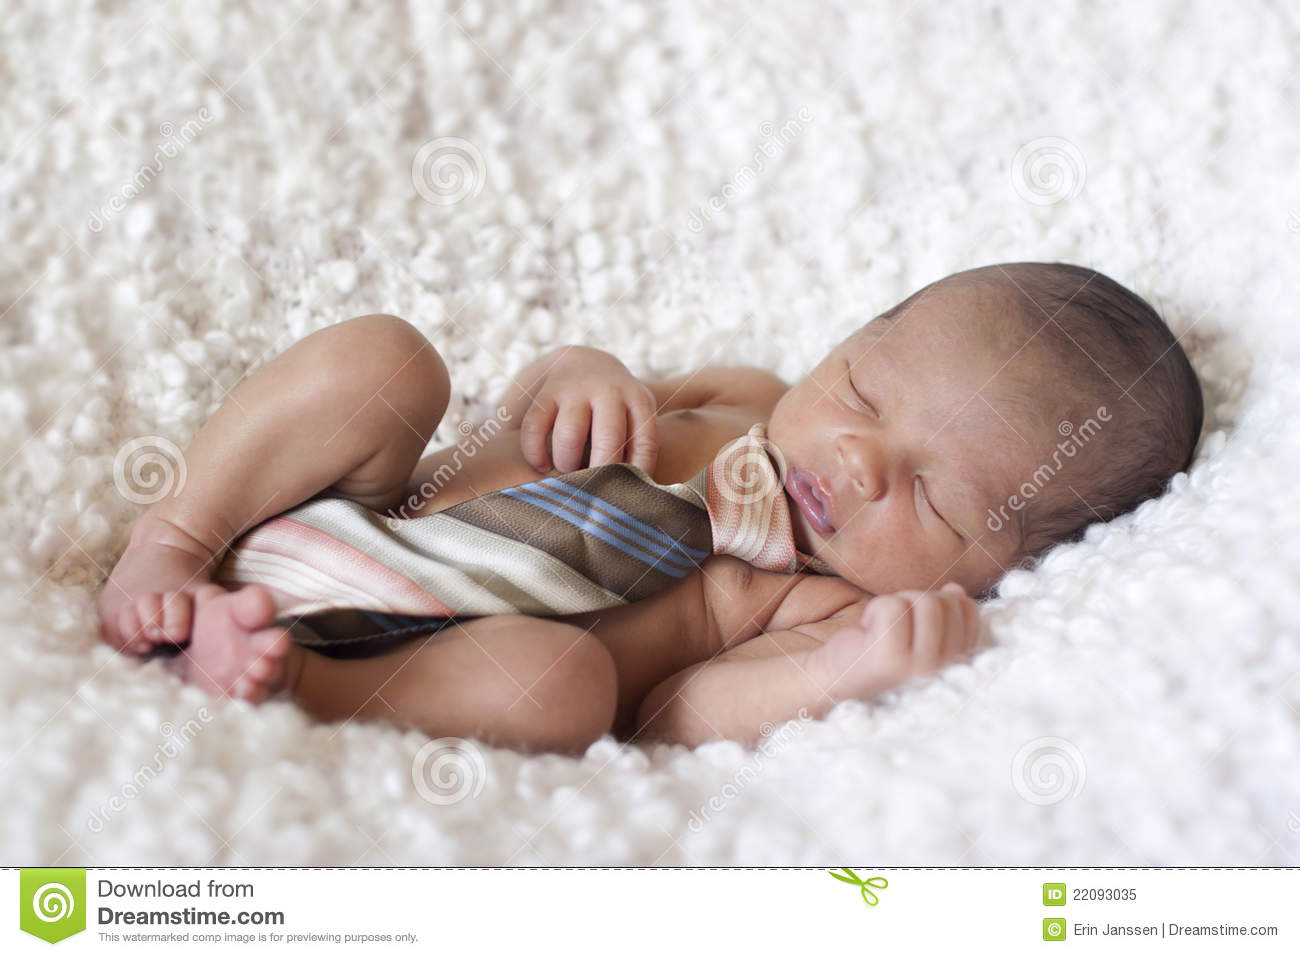 Newborn Baby Boy Sleeping With A Tie Stock Image